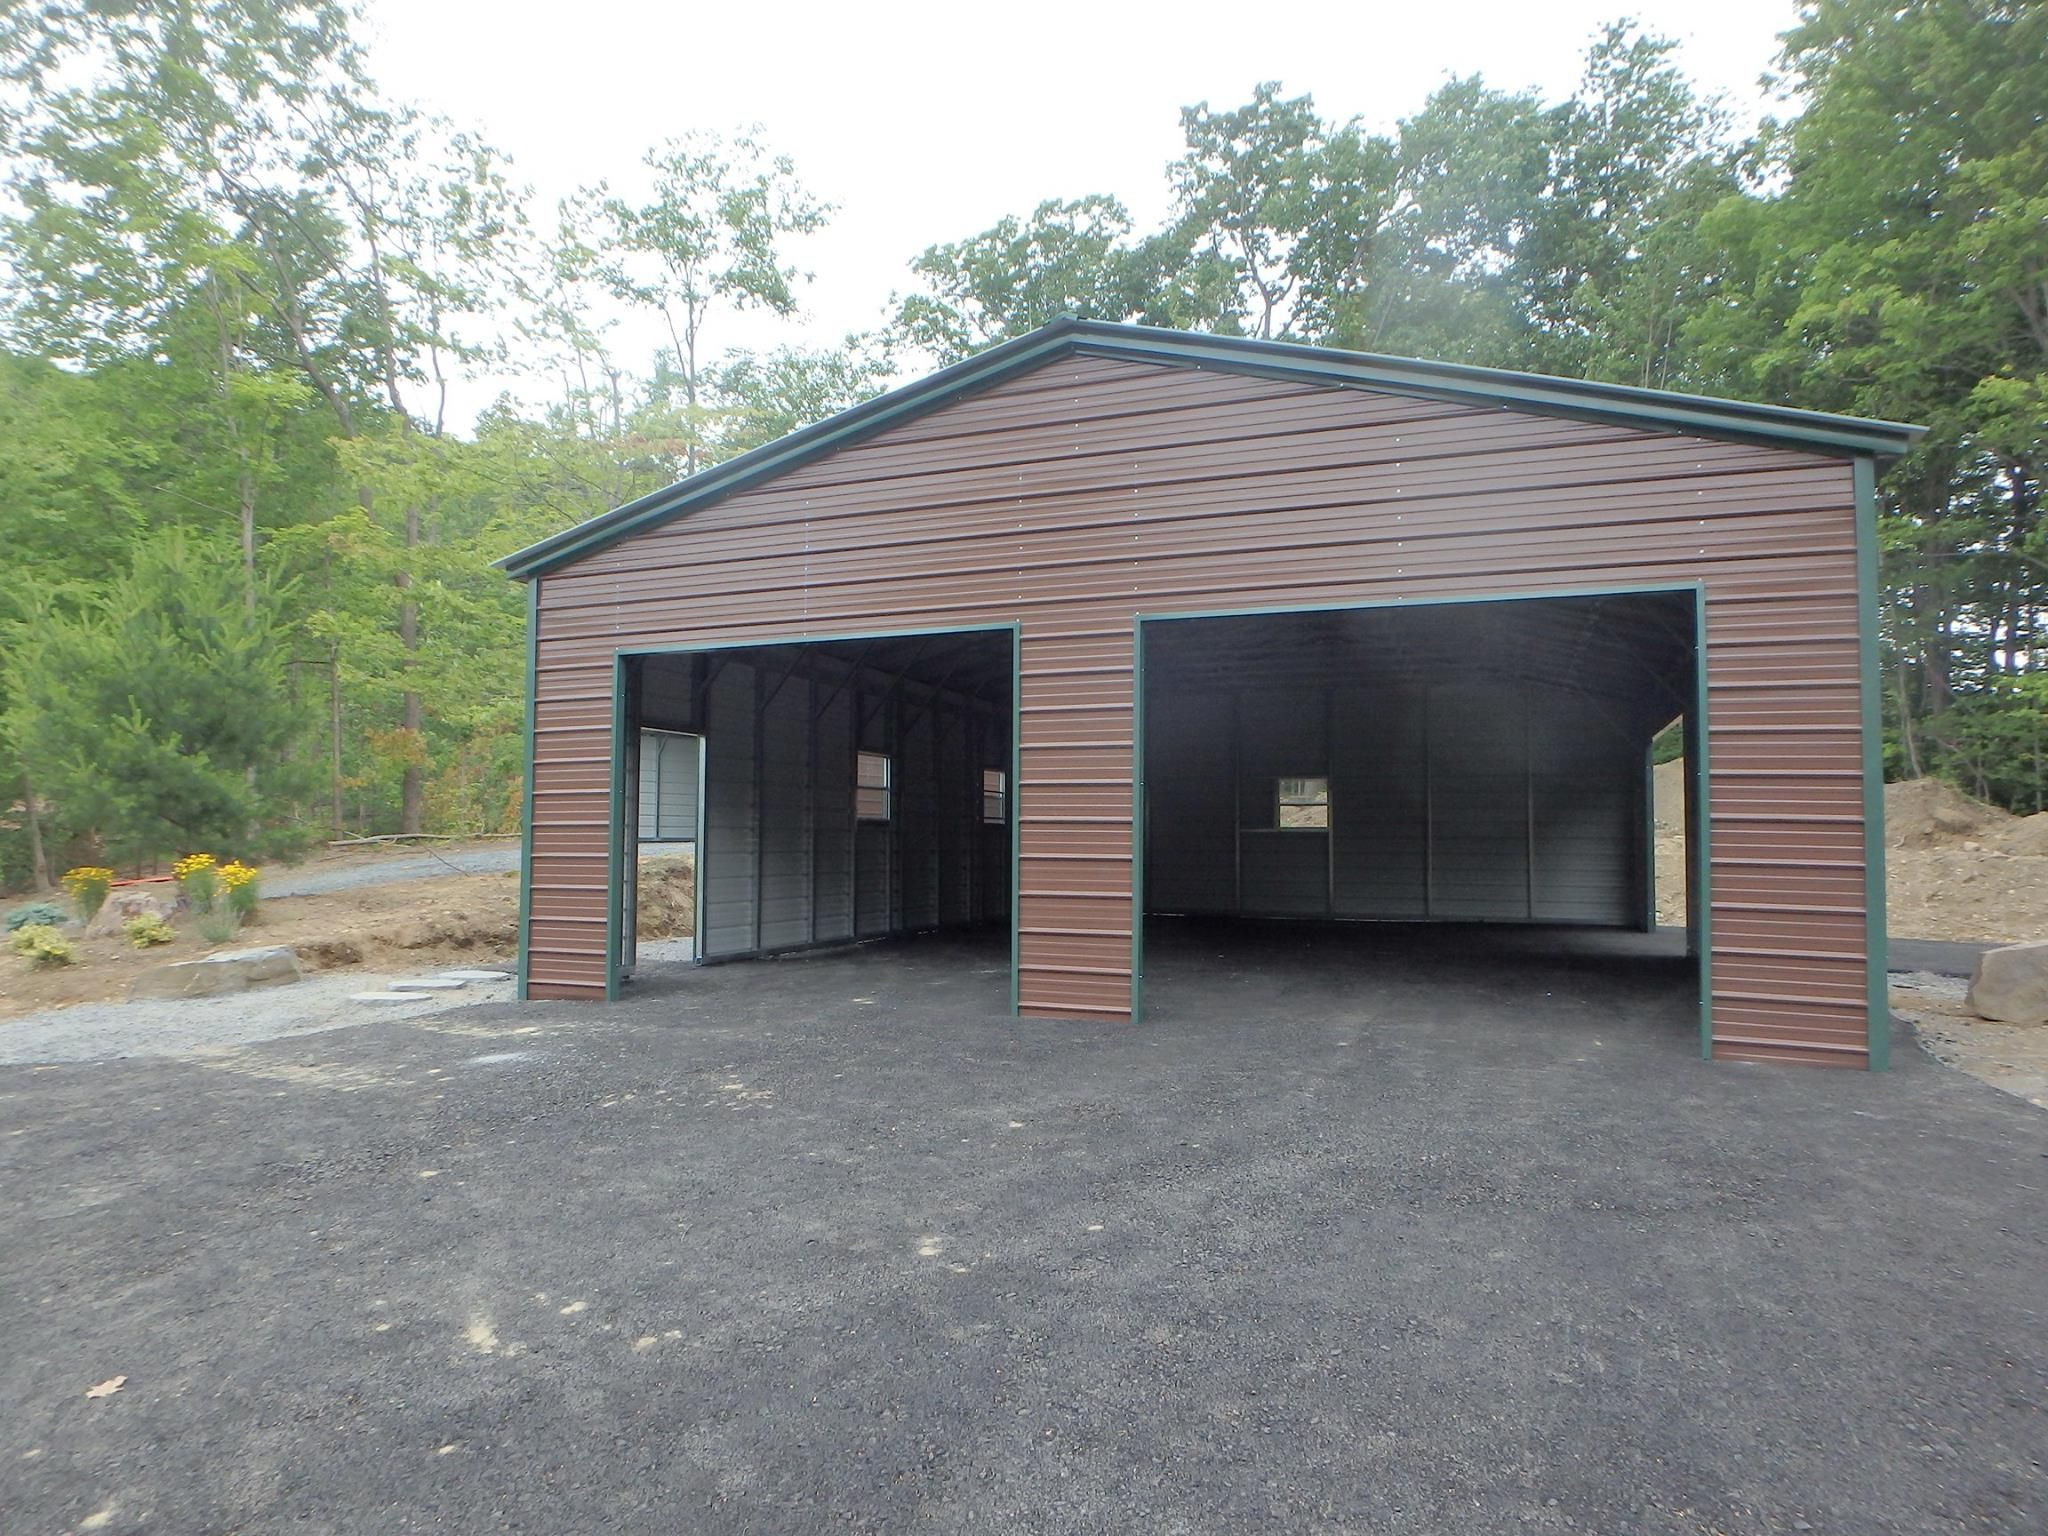 26 X 41 X 11 Vertical Roof Style Metal Workshop Building Features With 2 10x8 Roll Up Doors On Front End Wall 1 8x8 Roof Styles Metal Workshop Building